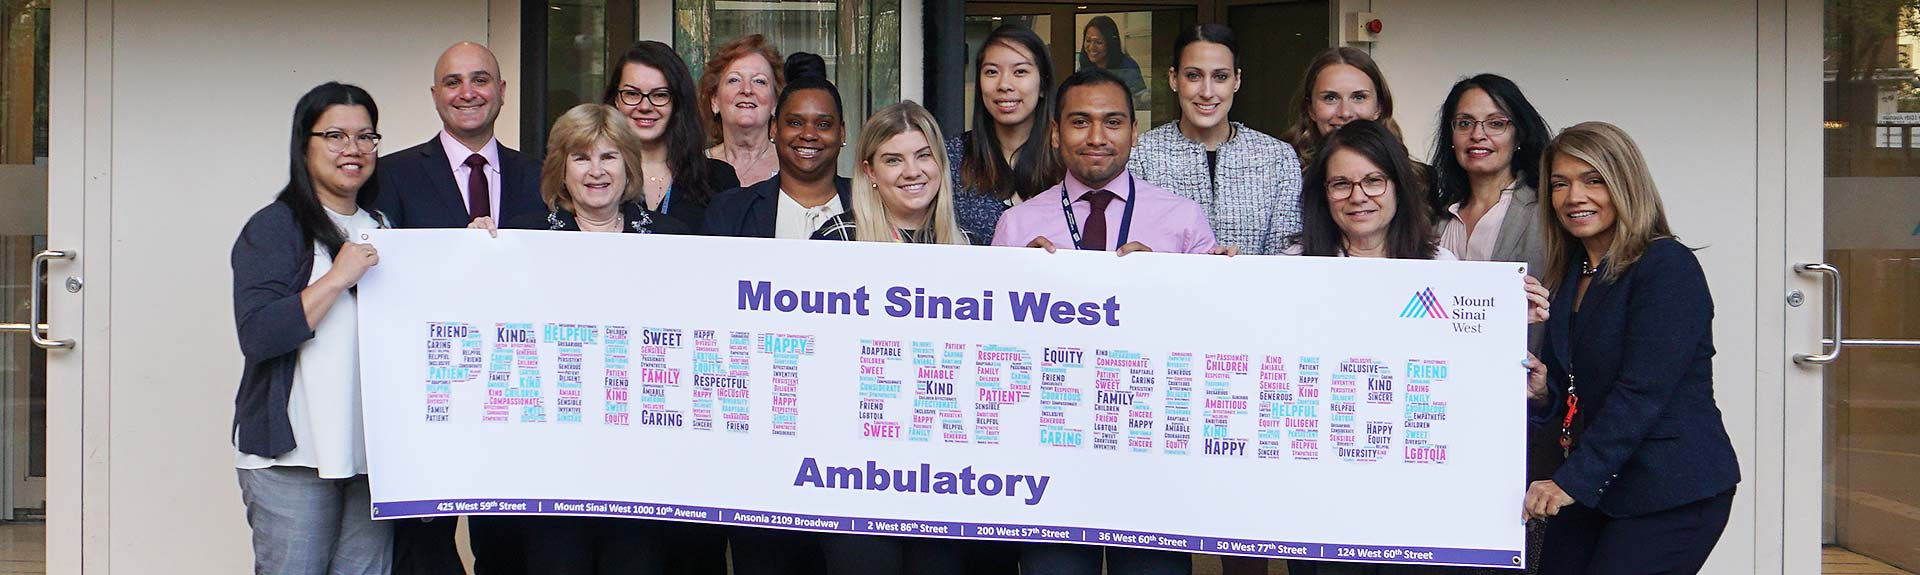 "Group holding sign that reads ""Mount Sinai West Patient Experience Ambulatory"""